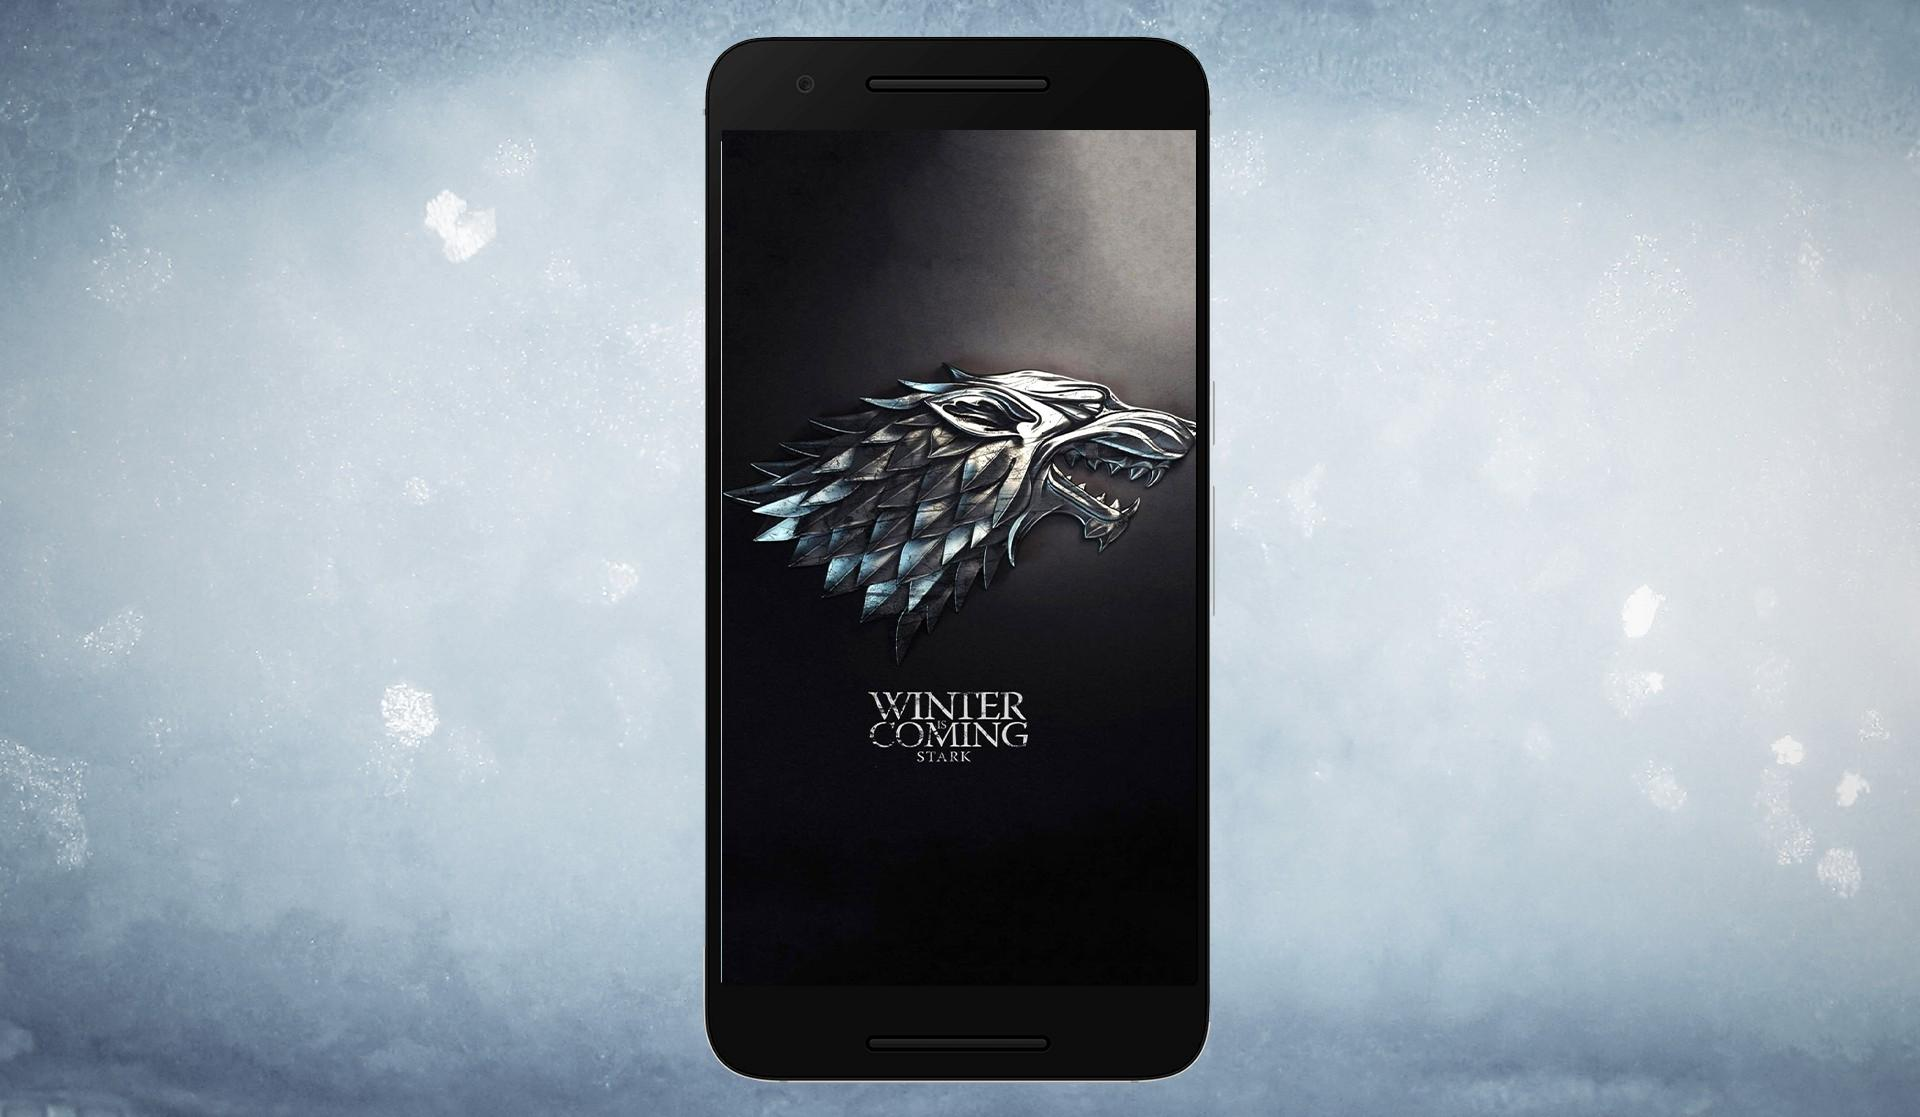 Winter Is Coming Wallpaper For Android Apk Download